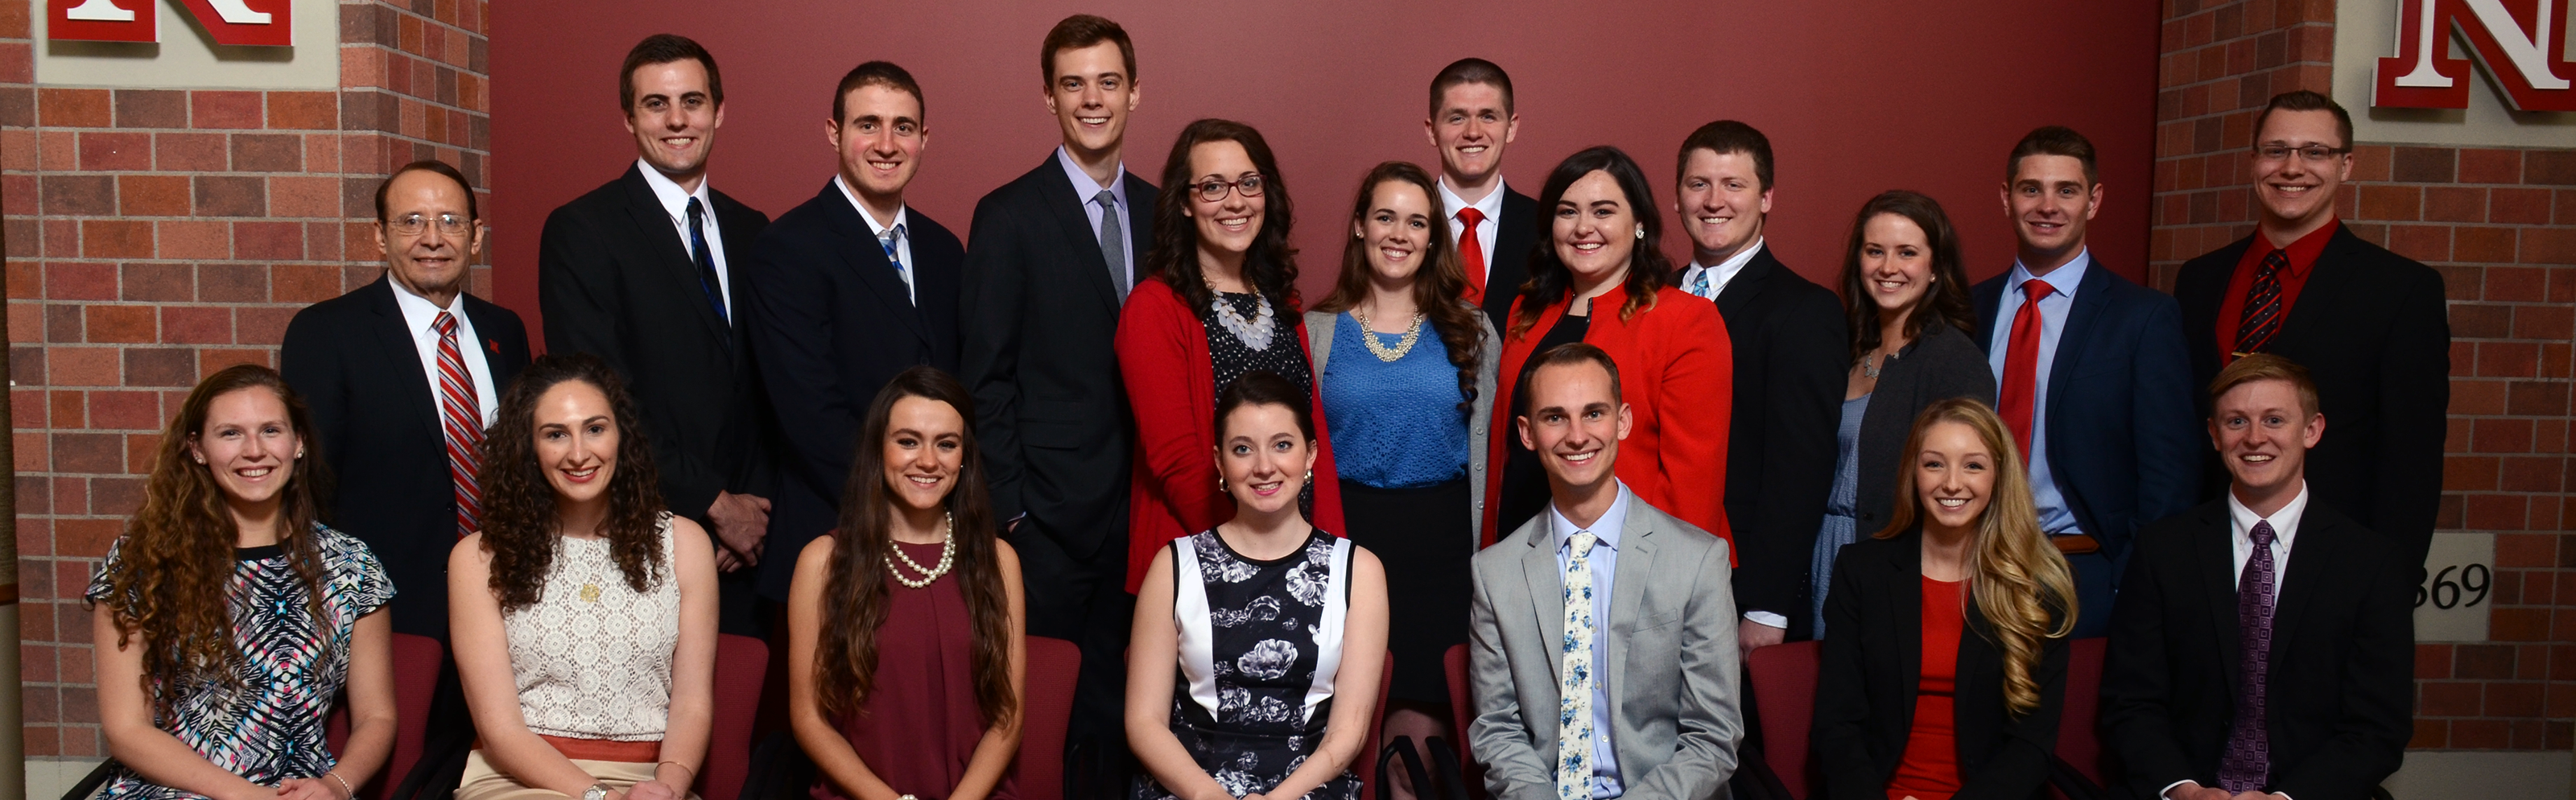 2015-2016 Outstanding Student Leader Award Semifinalists